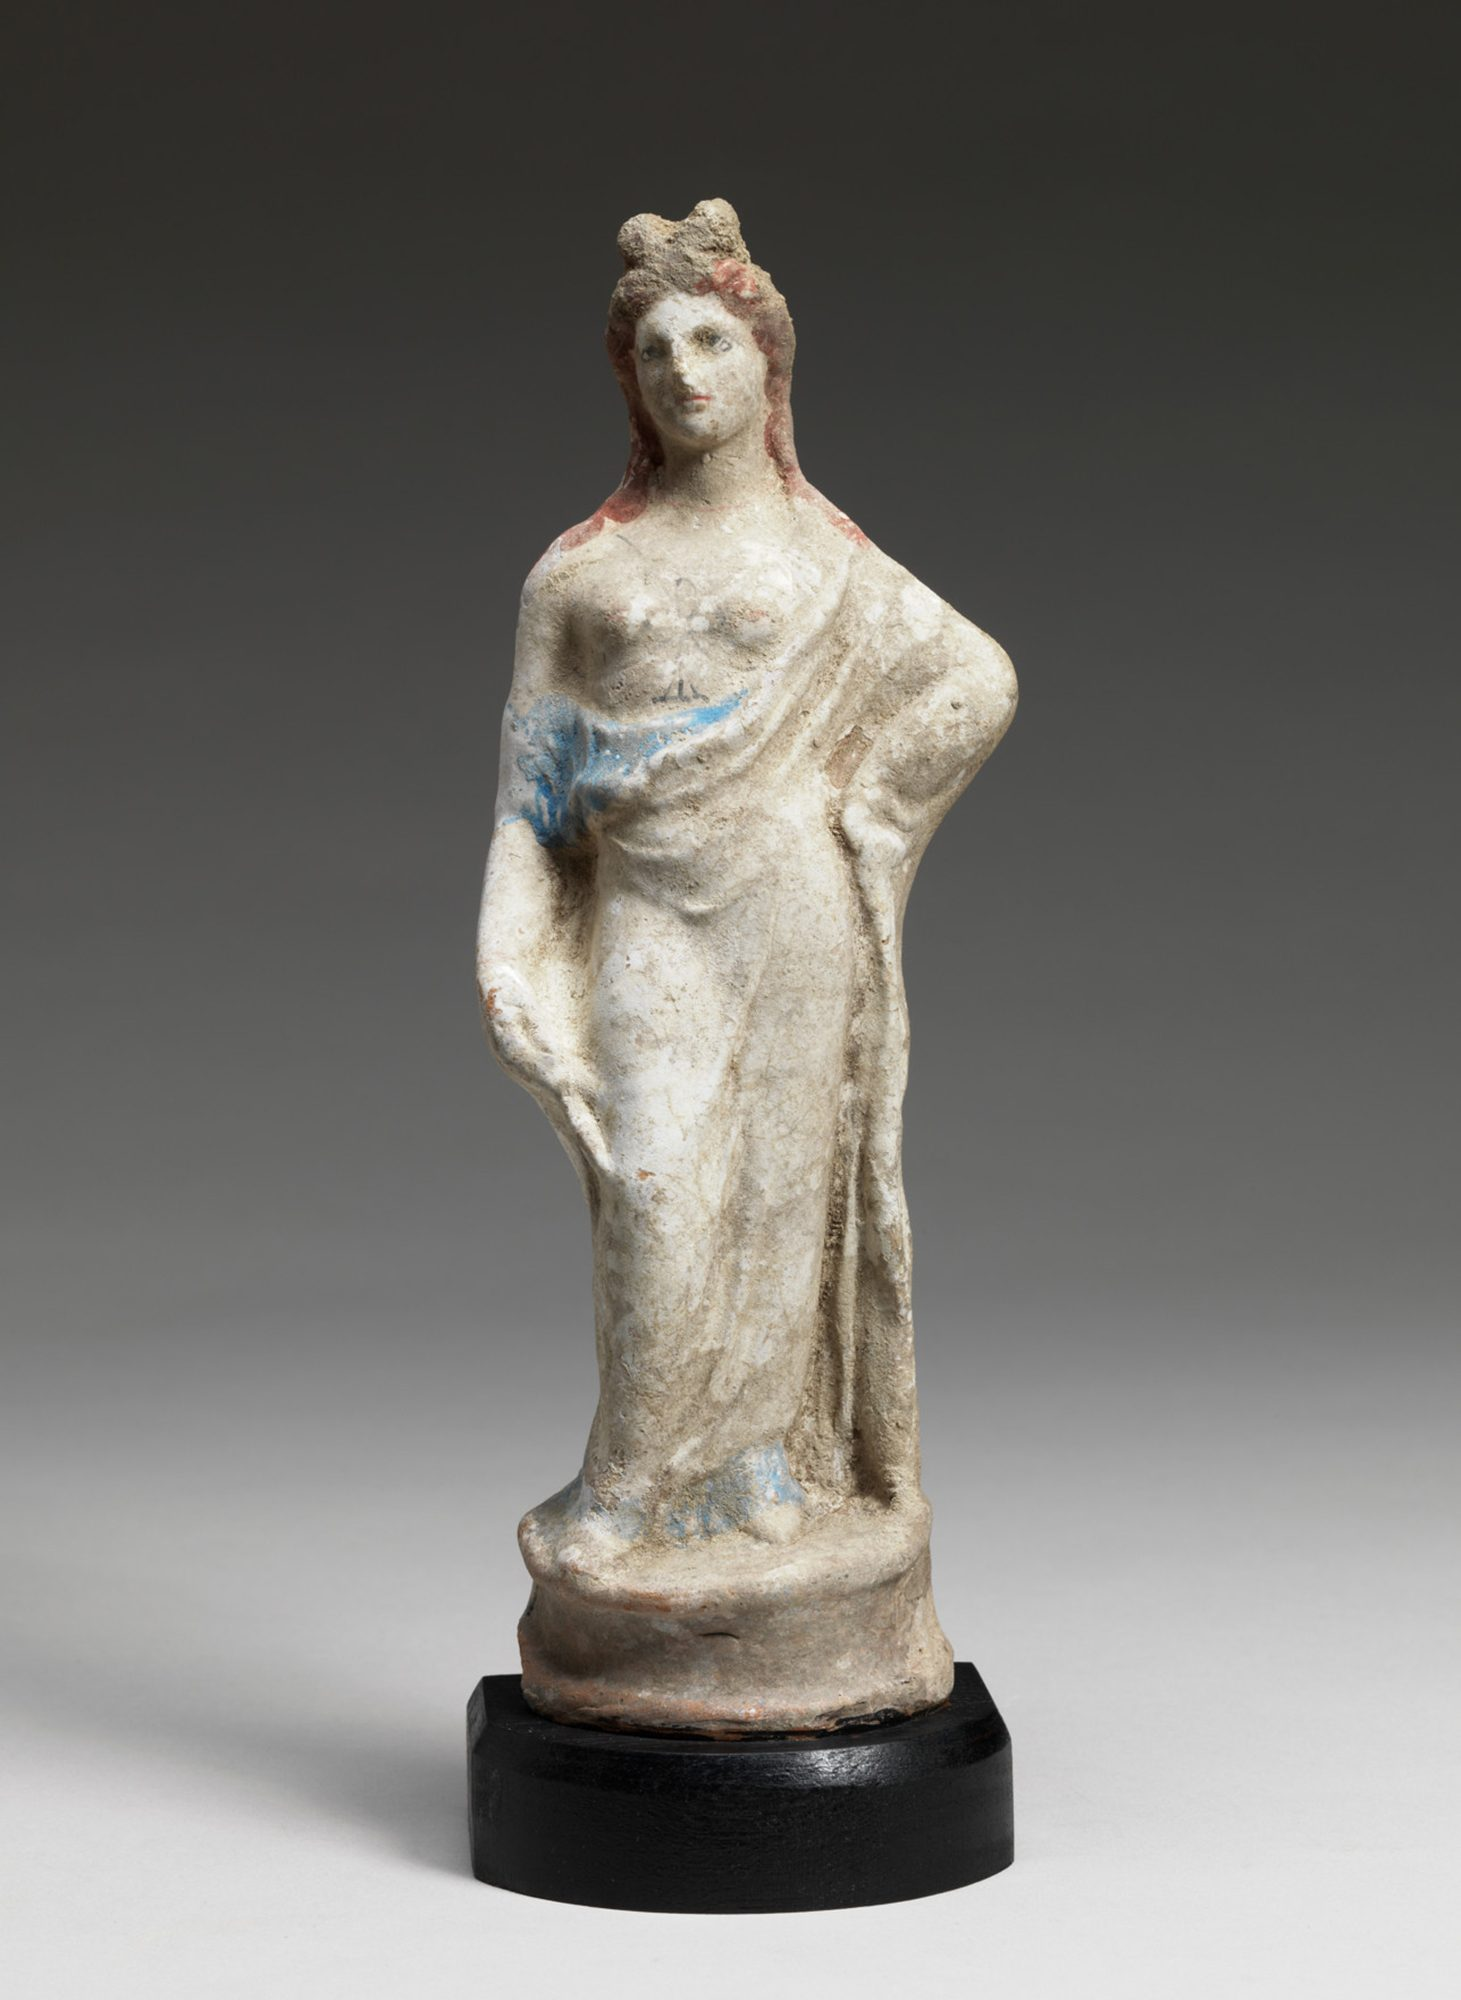 Greek, Standing Draped Woman, Possibly Aphrodite, 350-330 BC. Terracotta. Gift of the son and daughters of Charles Bolles Bolles-Rogers, Class of 1907: Frederick Van D. Rogers, Mary Rogers, Savage, and Nancy Rogers Pierson, 77.63.46